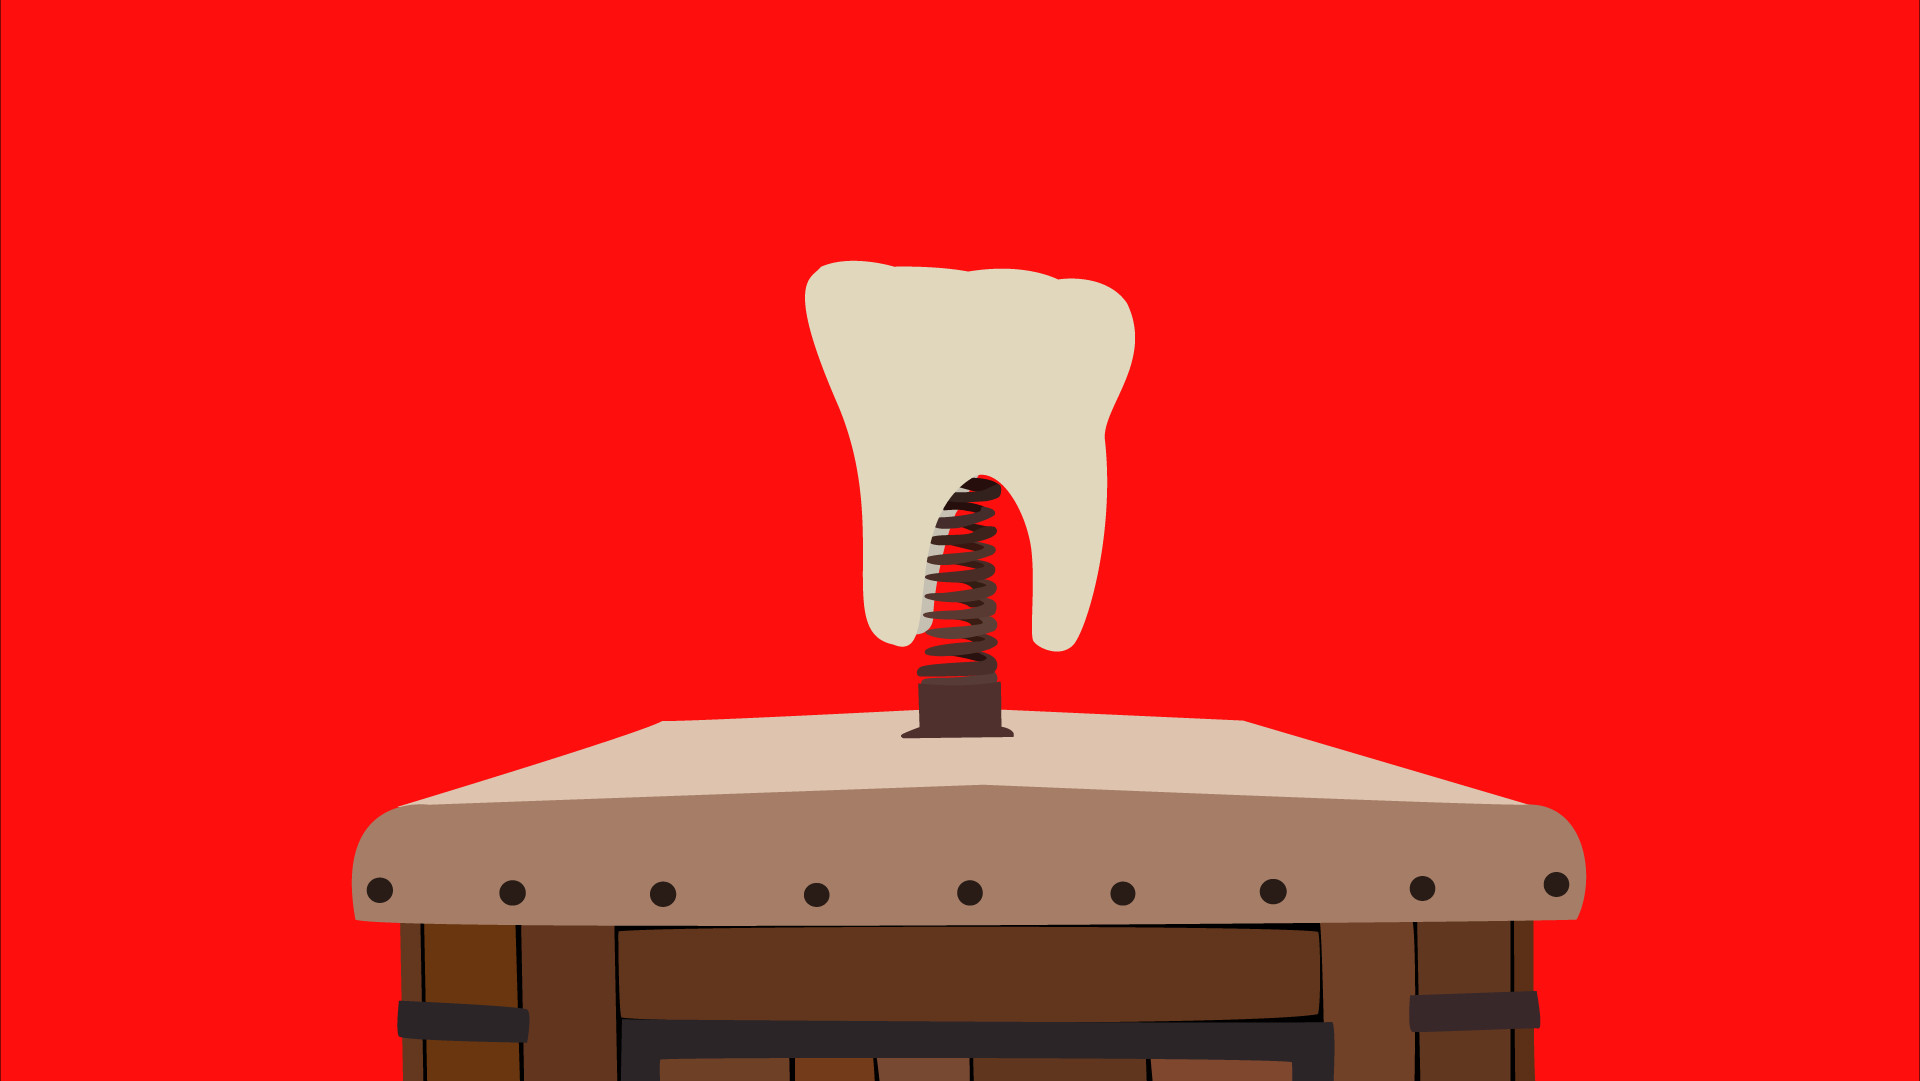 12/07/2014: Tooth, px. px. Tooth Computer Wallpapers …